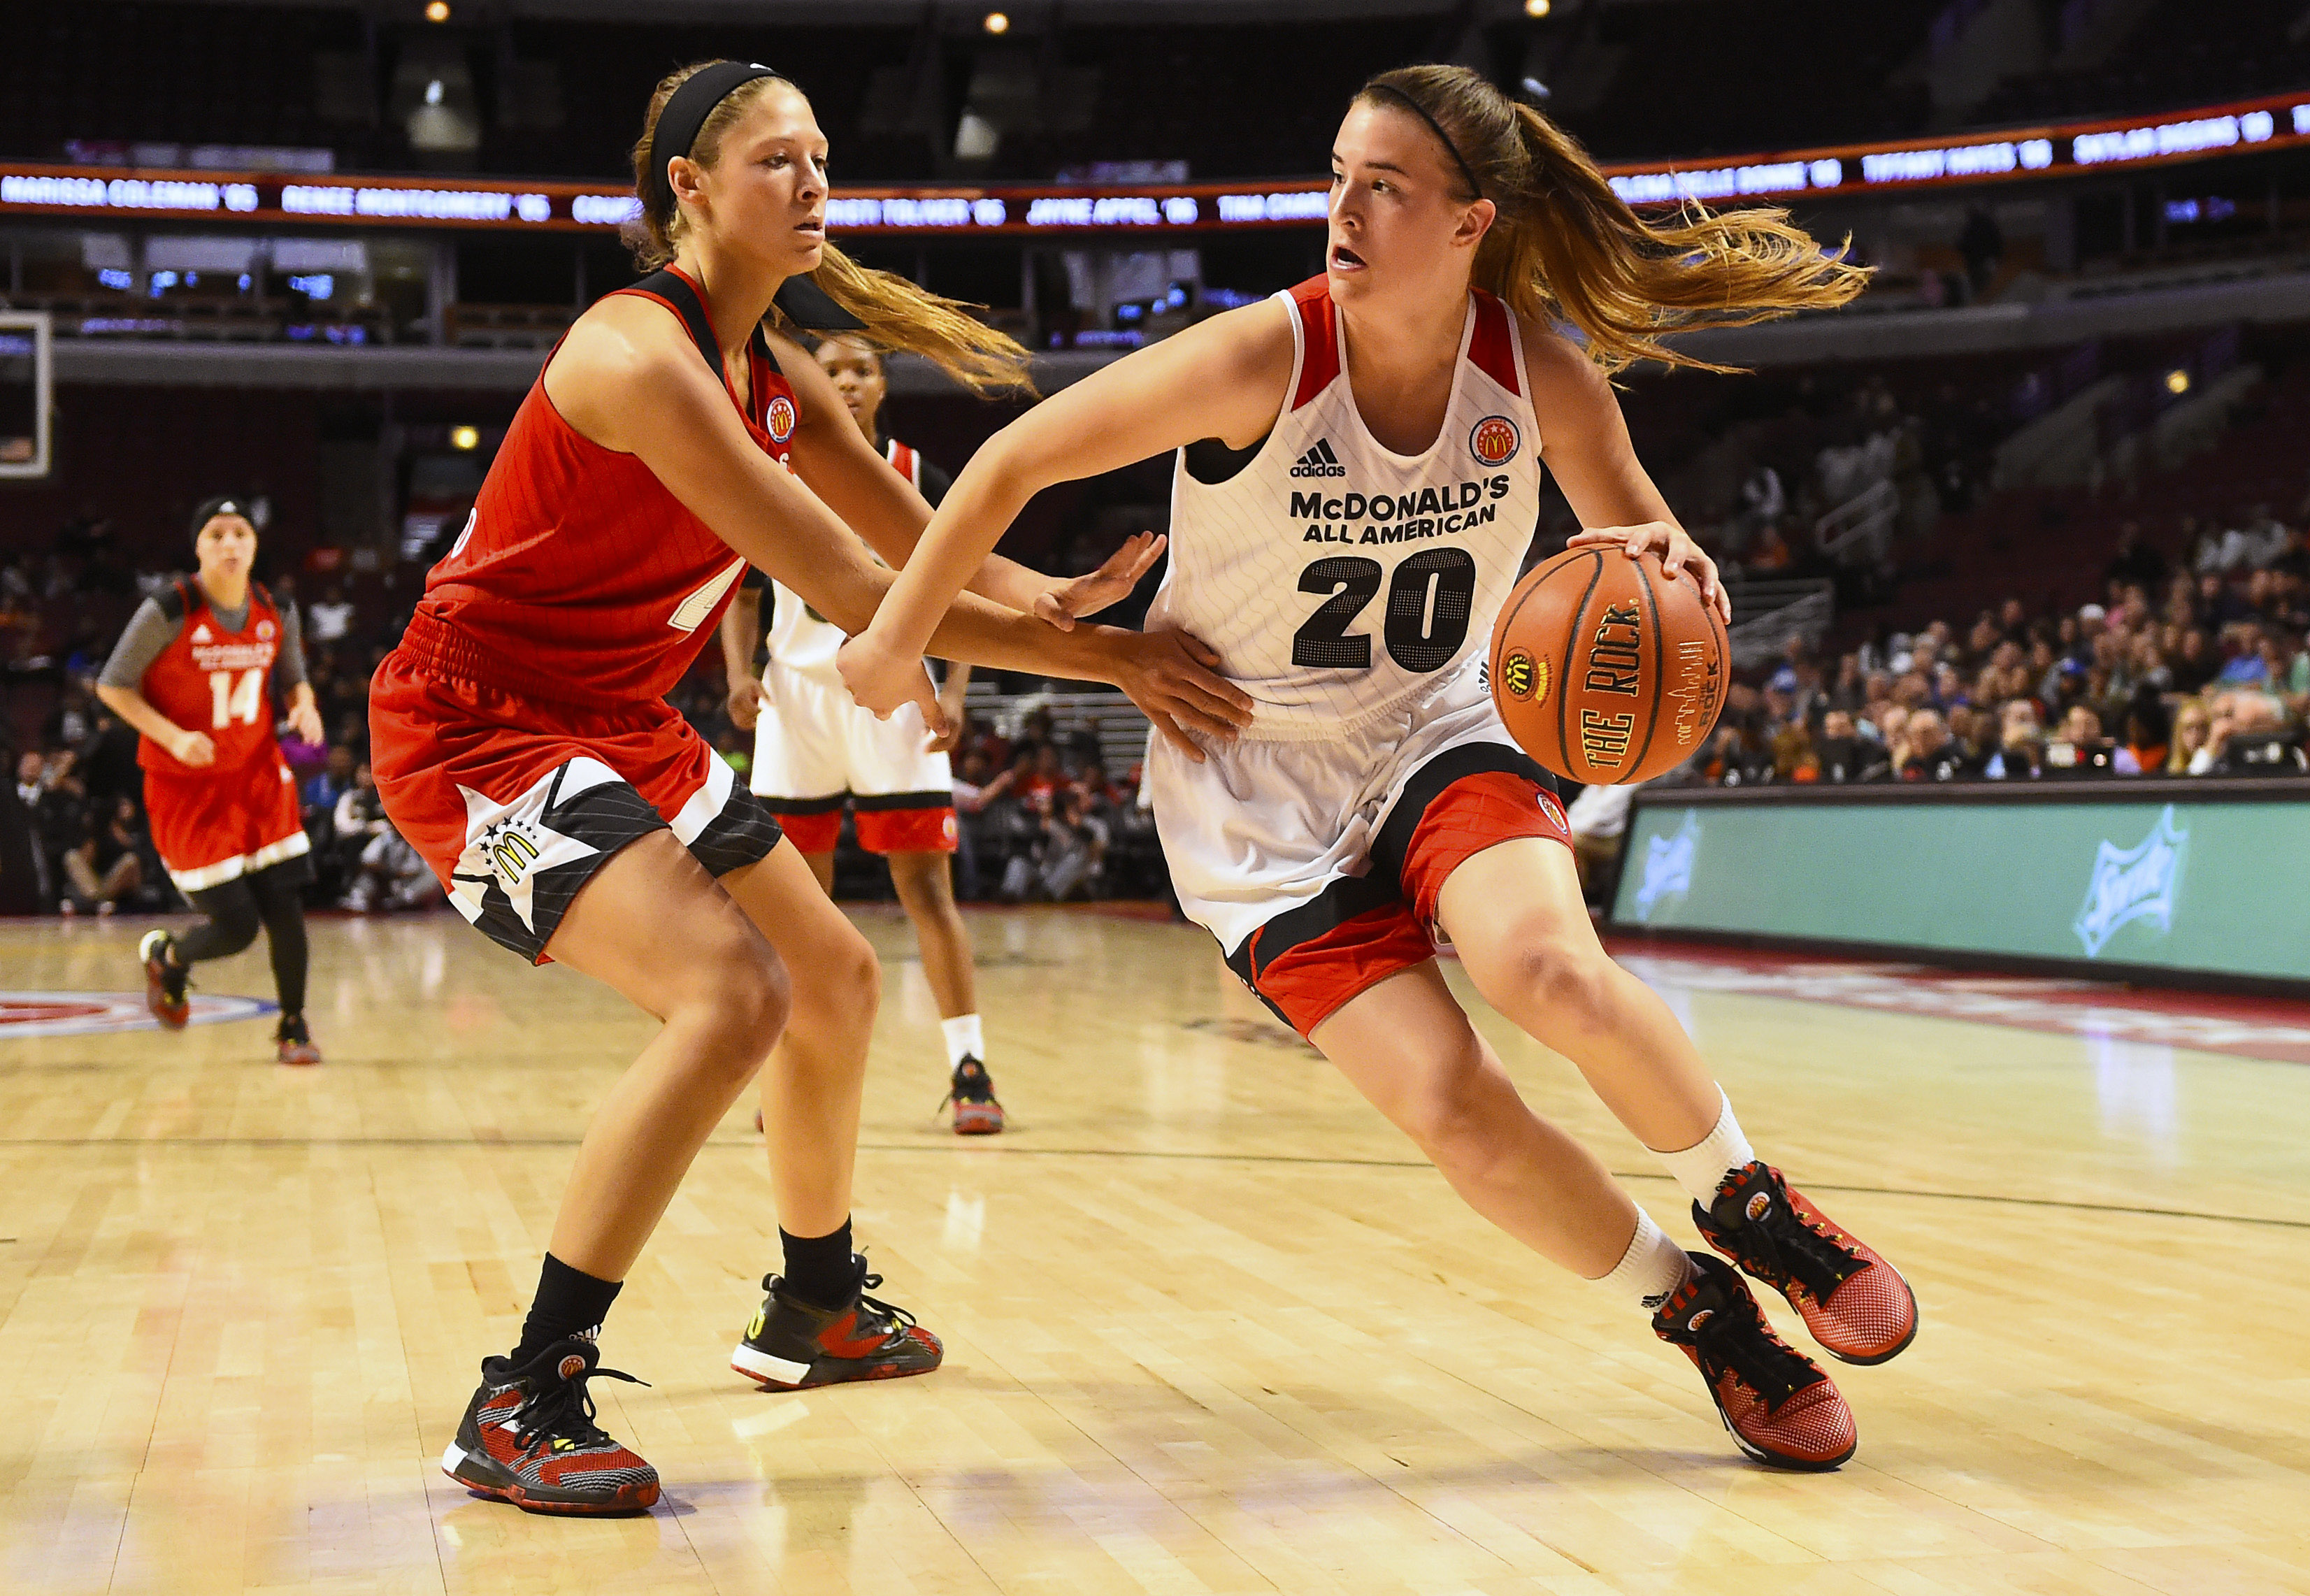 Sabrina Ionescu is the lone unsigned player in the girls game. (Photo: Mike DiNovo, USA TODAY Sports)